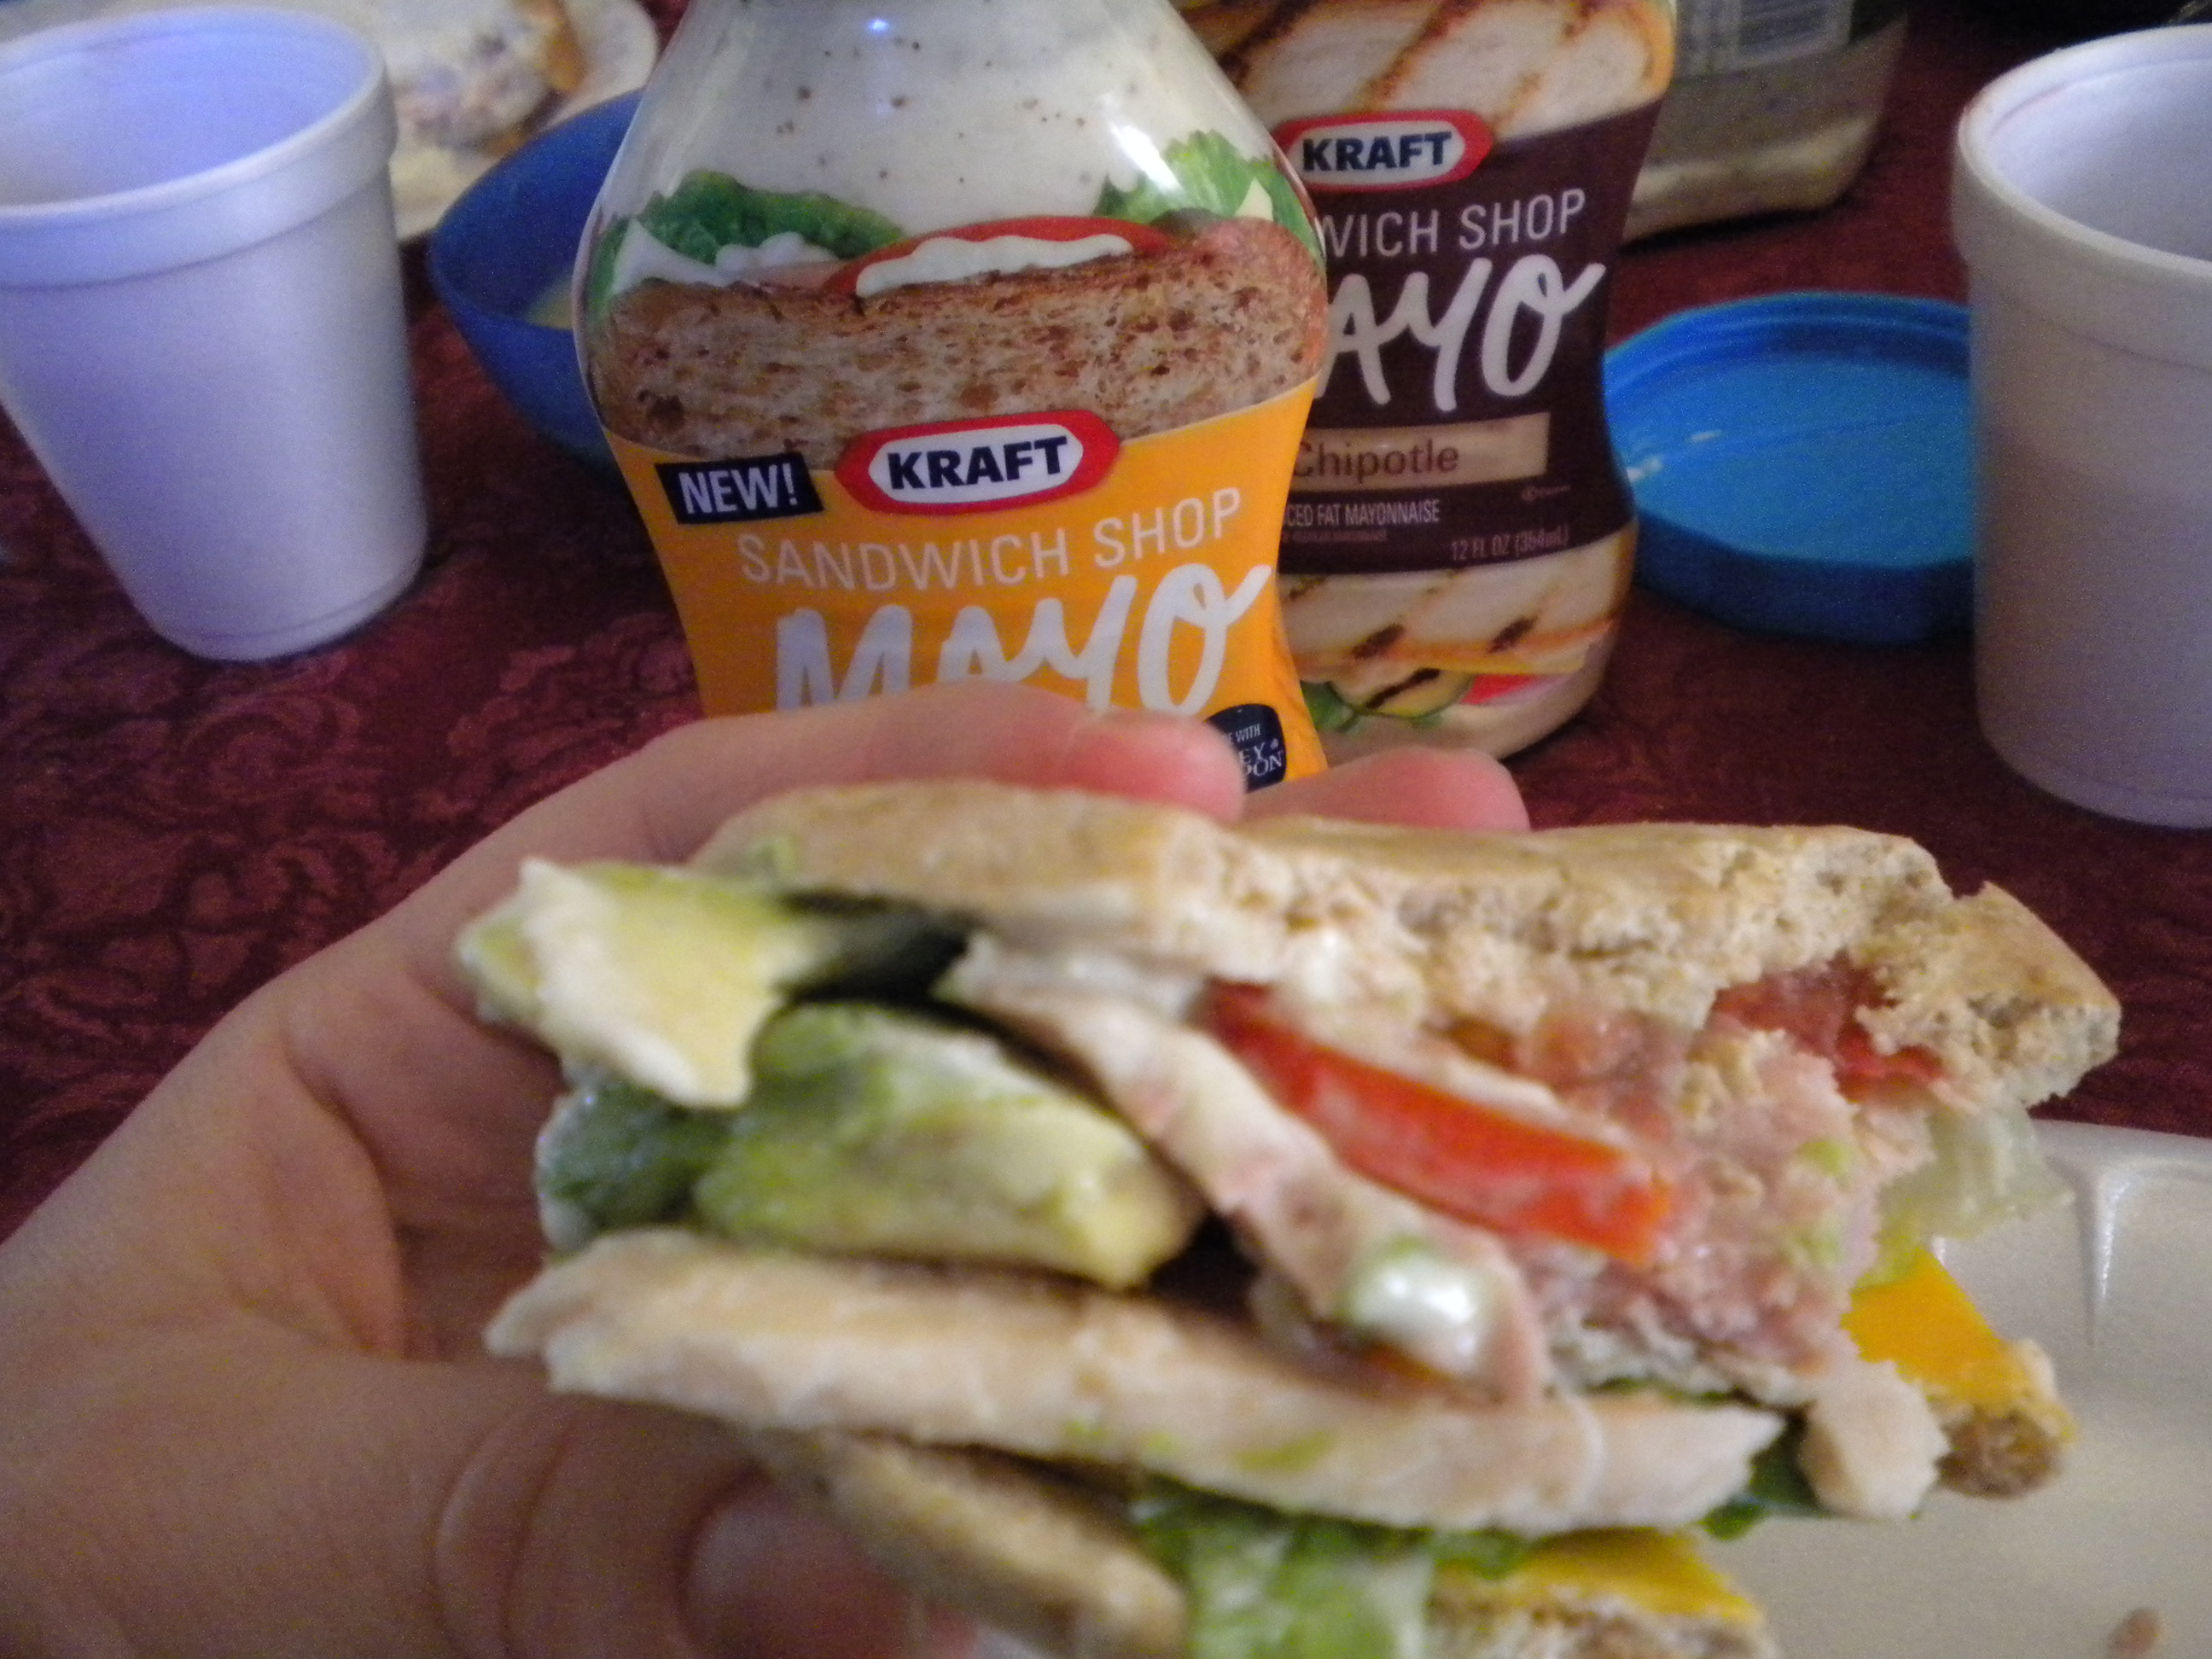 Oscar Mayer Bold Club Sandwich With moreover Creepy Bone Sandwich Blood Dip 168564 together with Ham And Arugula Sandwich further 1 002 Hot Pockets Products Coupon likewise Oscar Mayer Cold Cuts Oven Roas 1723. on oscar mayer sandwich meat coupons